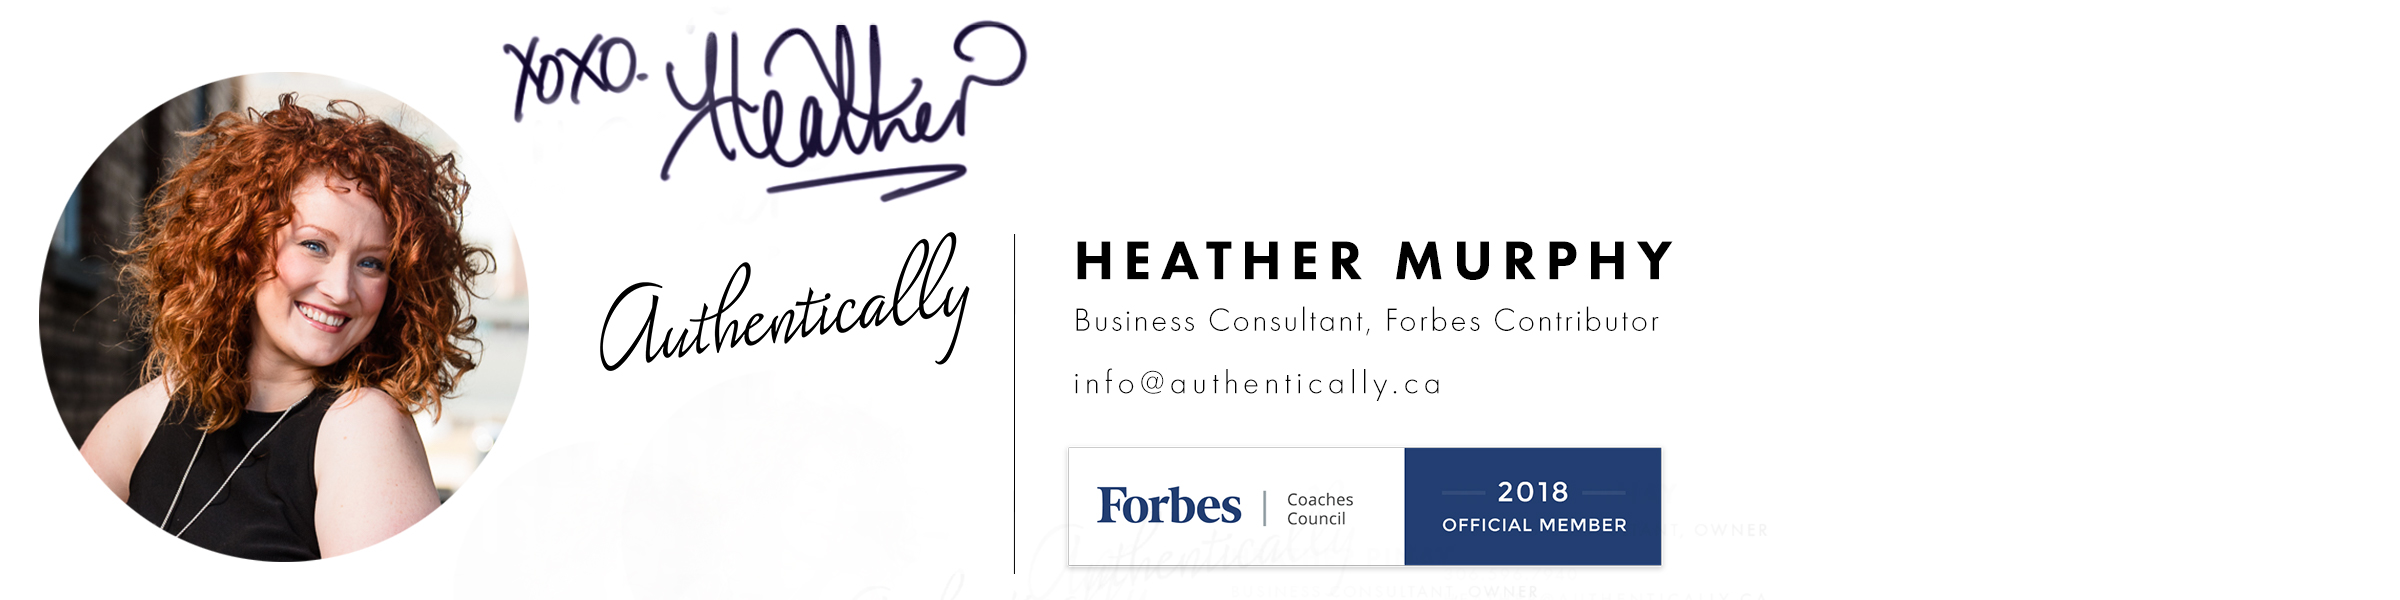 Heather Murphy Signature.jpg